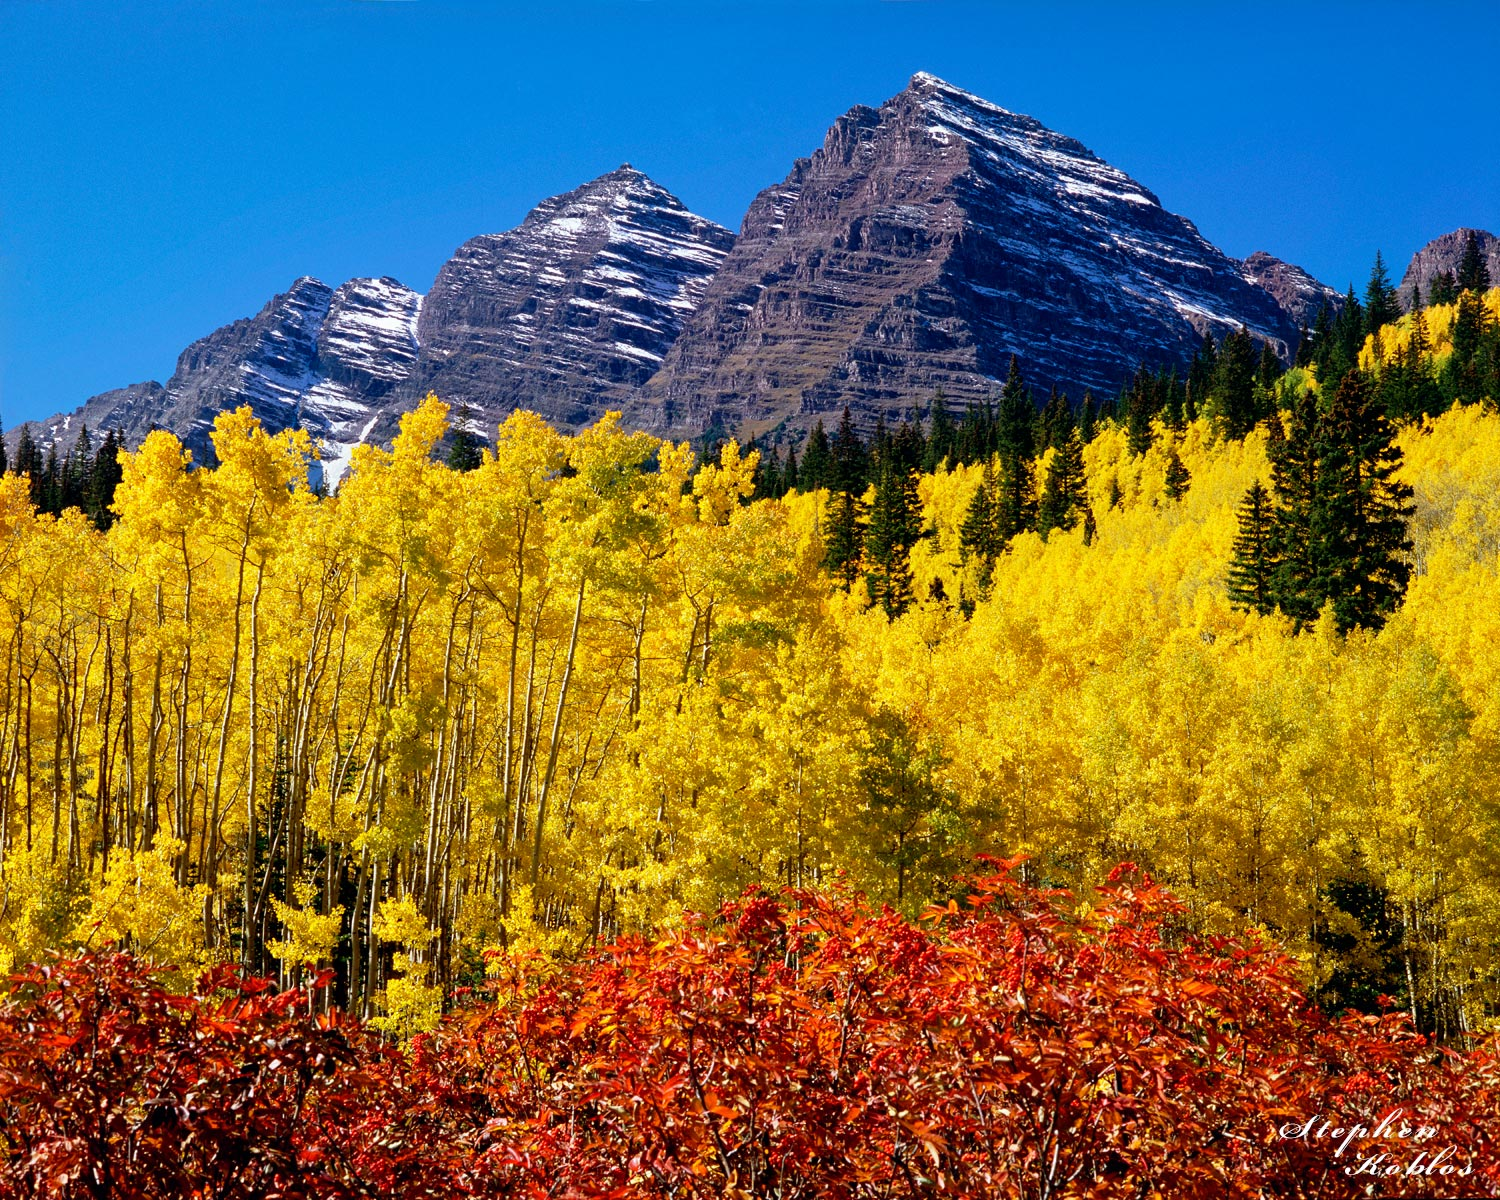 2003, The best fall color I have ever seen at the Maroon Bells....